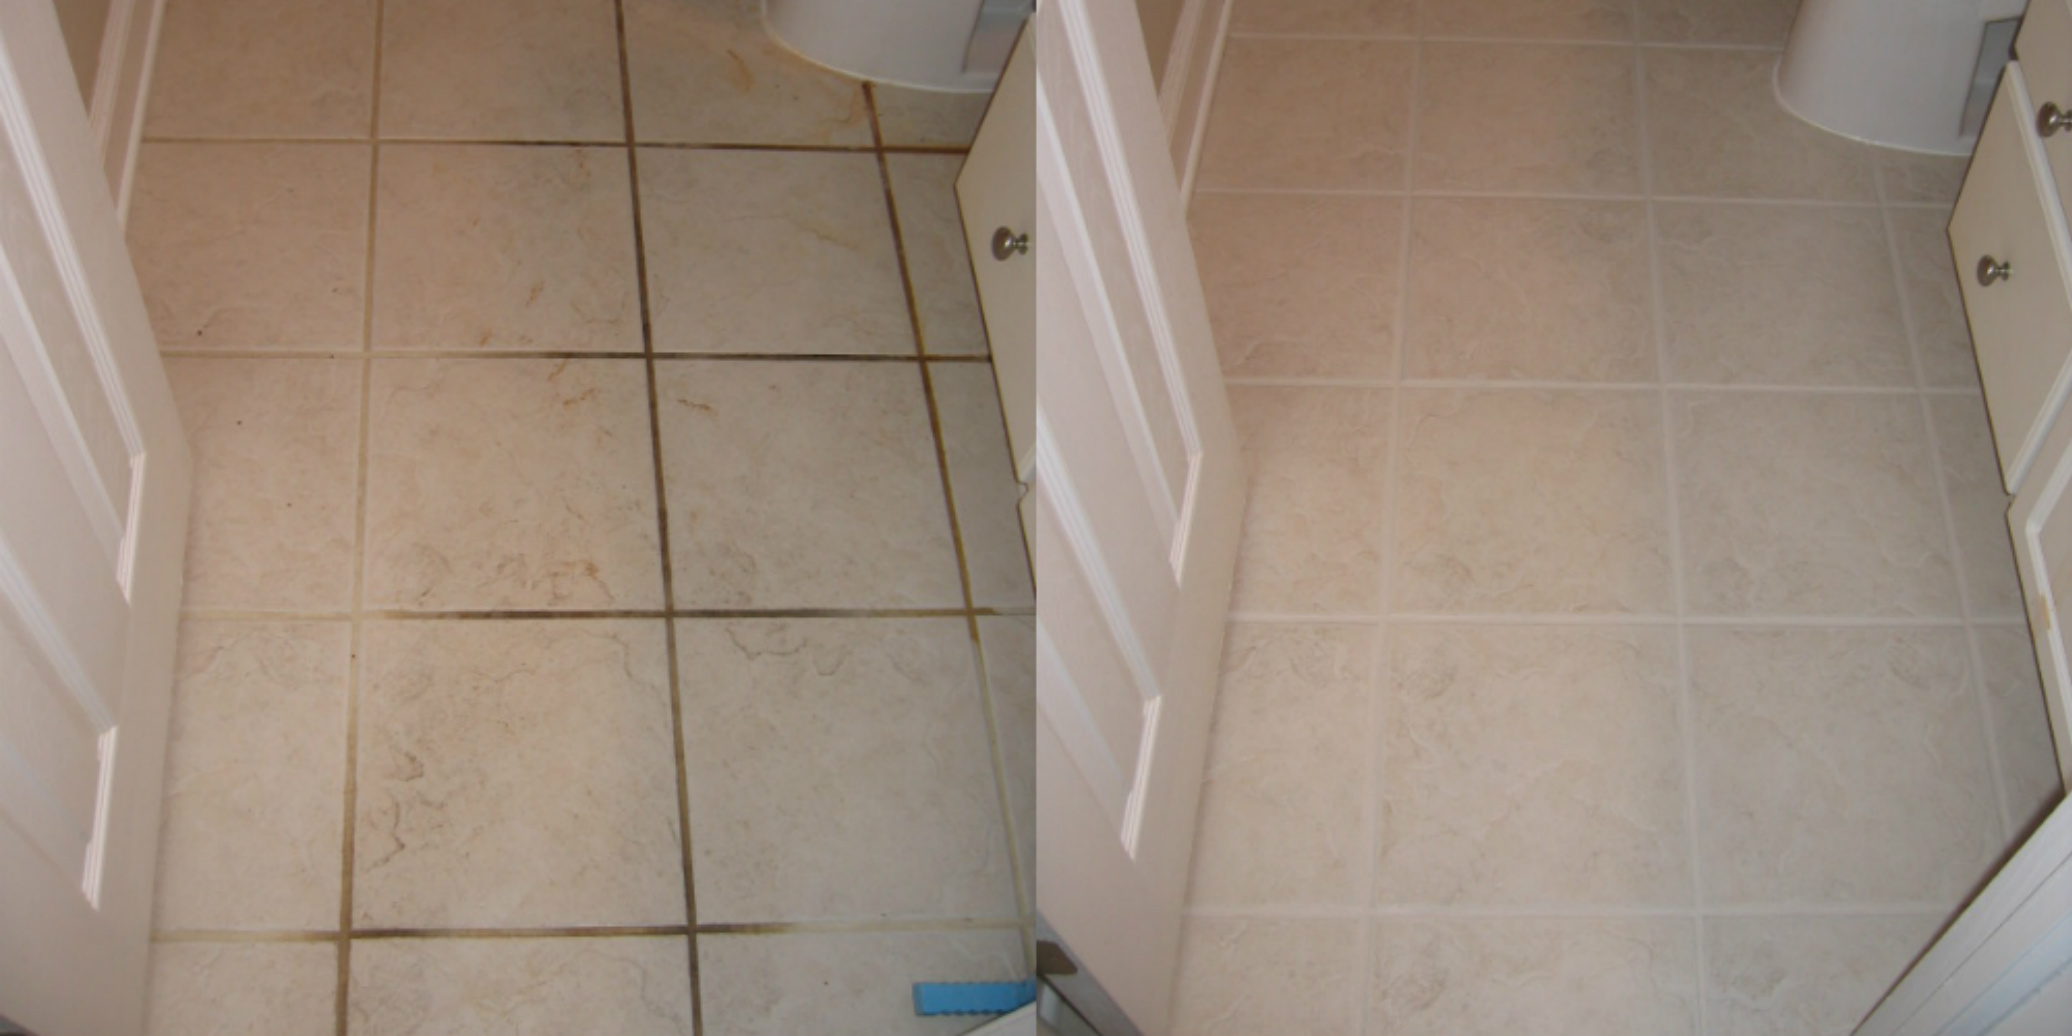 Tile And Grout Cleaning Melbourne 1800 233 141 Tile Grout Cleaning